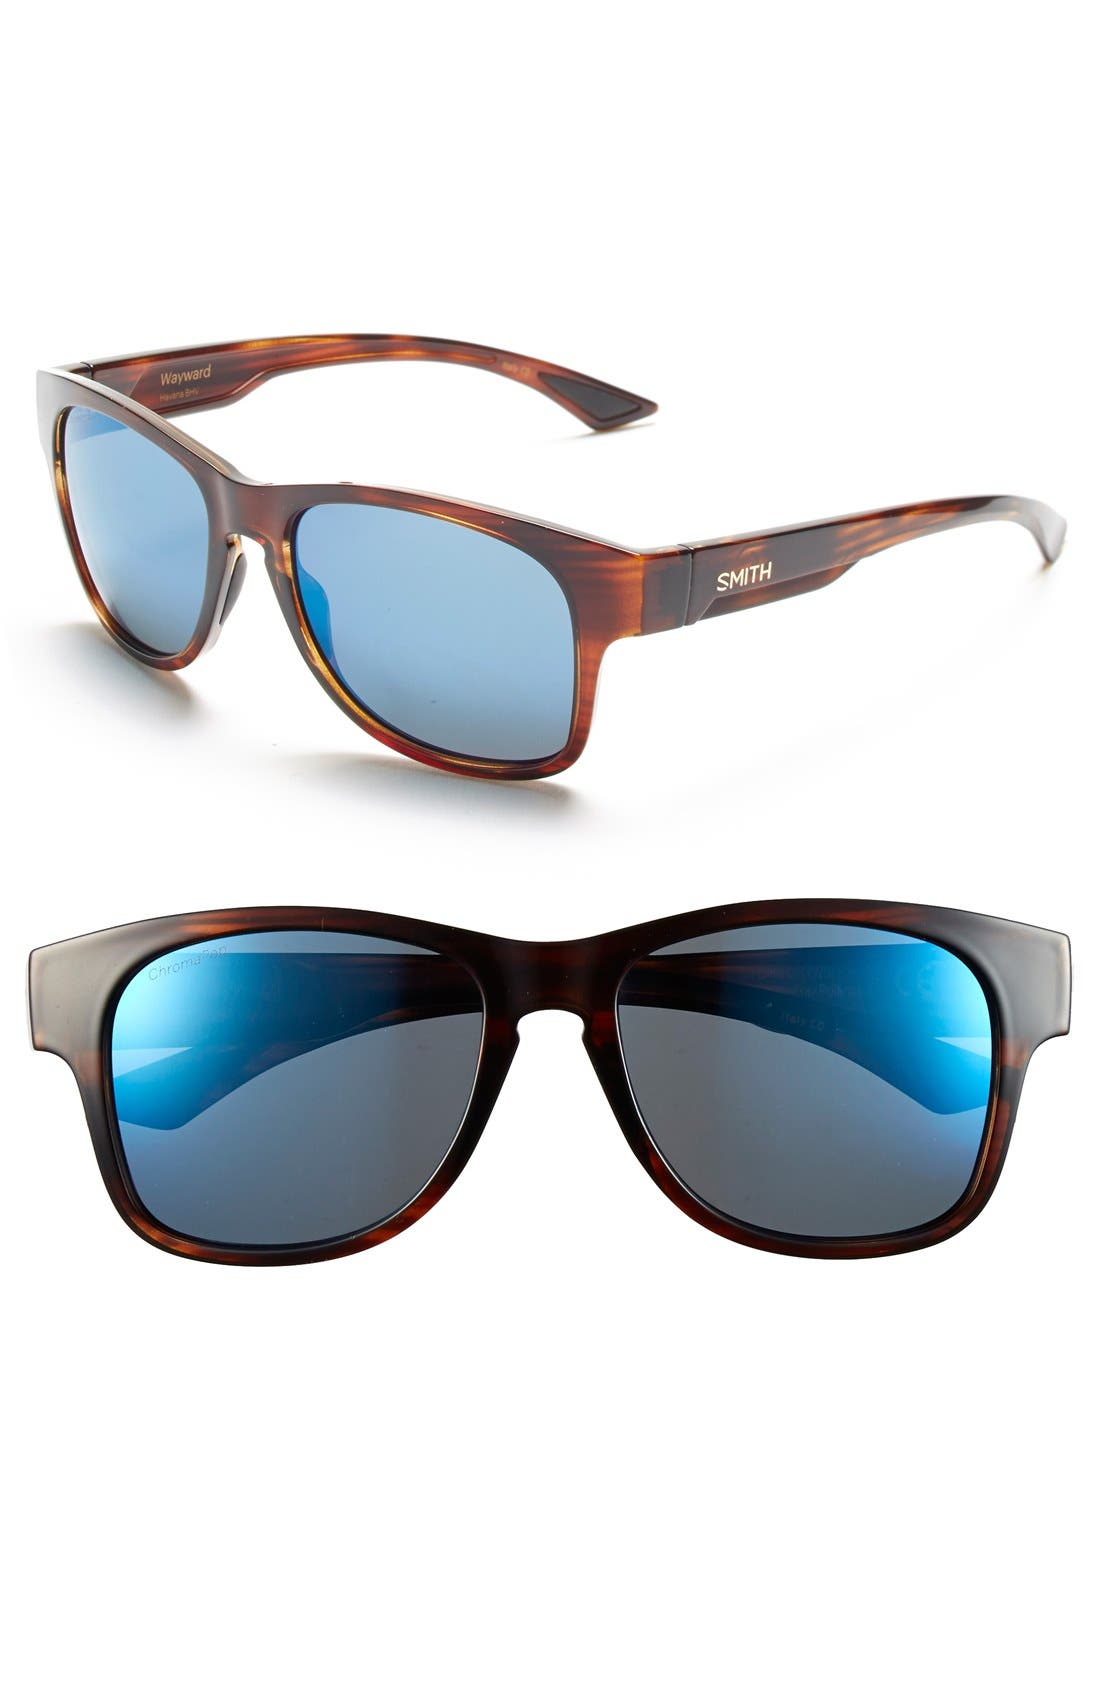 'Wayward' 54mm Polarized Sunglasses,                         Main,                         color, HAVANA/ POLAR BLUE MIRROR